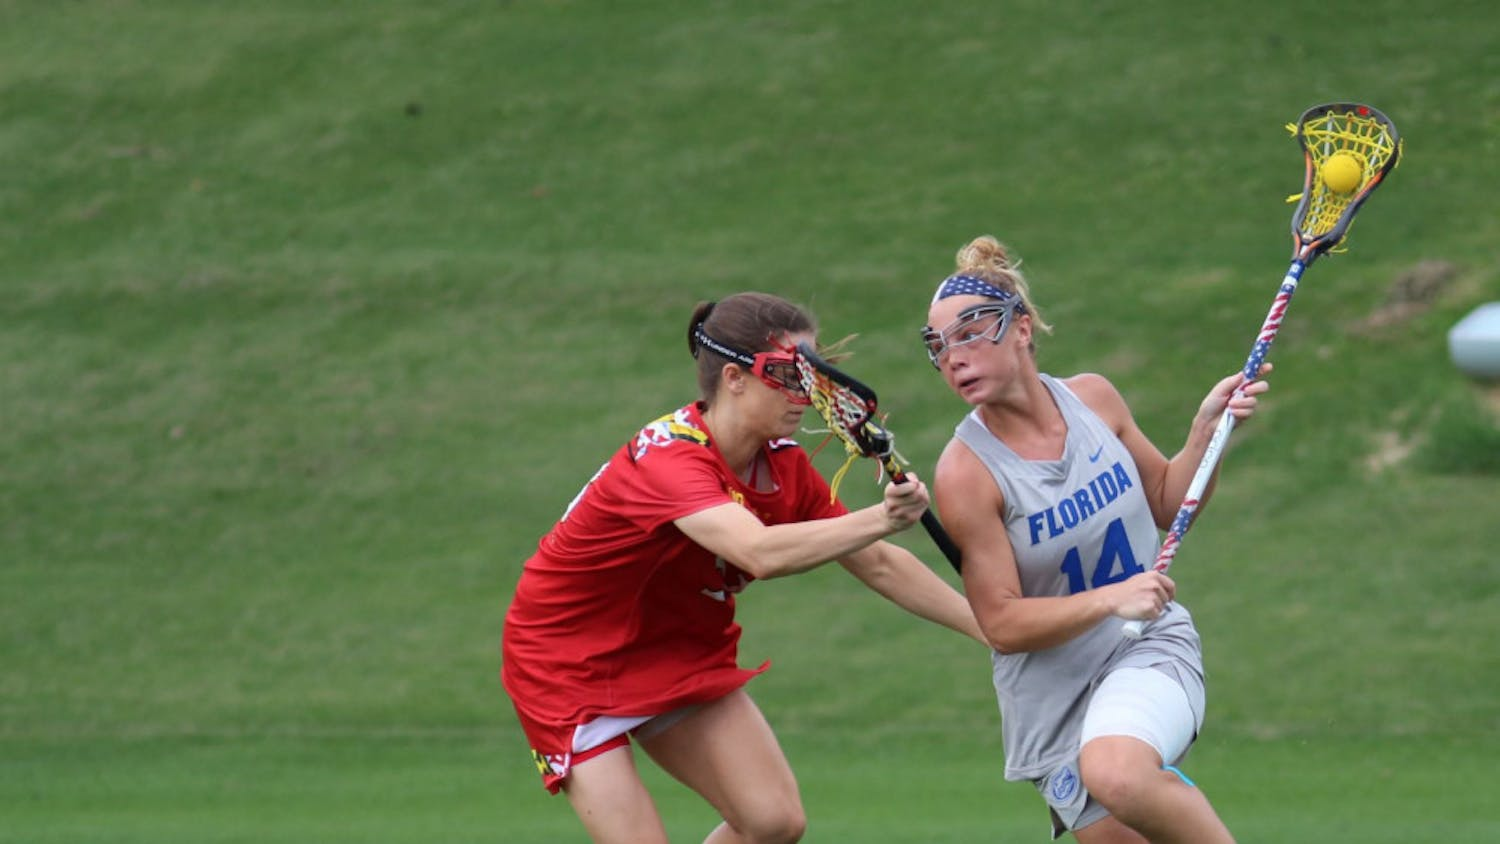 Senior attacker Lindsey Ronbeck has recorded 15 goals in the last two contests, with seven in the UF lacrosse team's 20-10 victory Saturday over East Carolina.